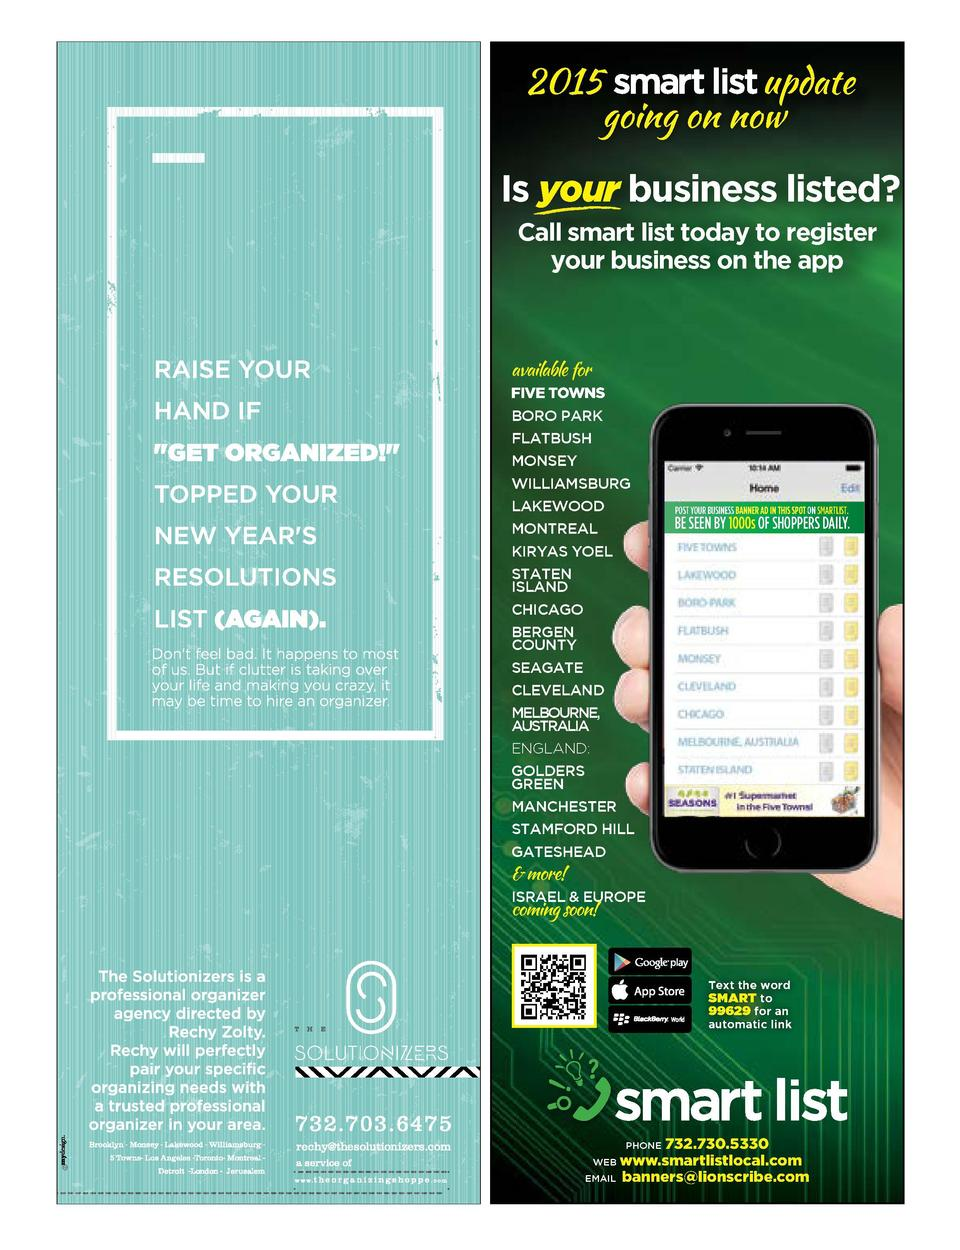 2015 update going on now  Is your business listed  Call smart list today to register your business on the app  available f...